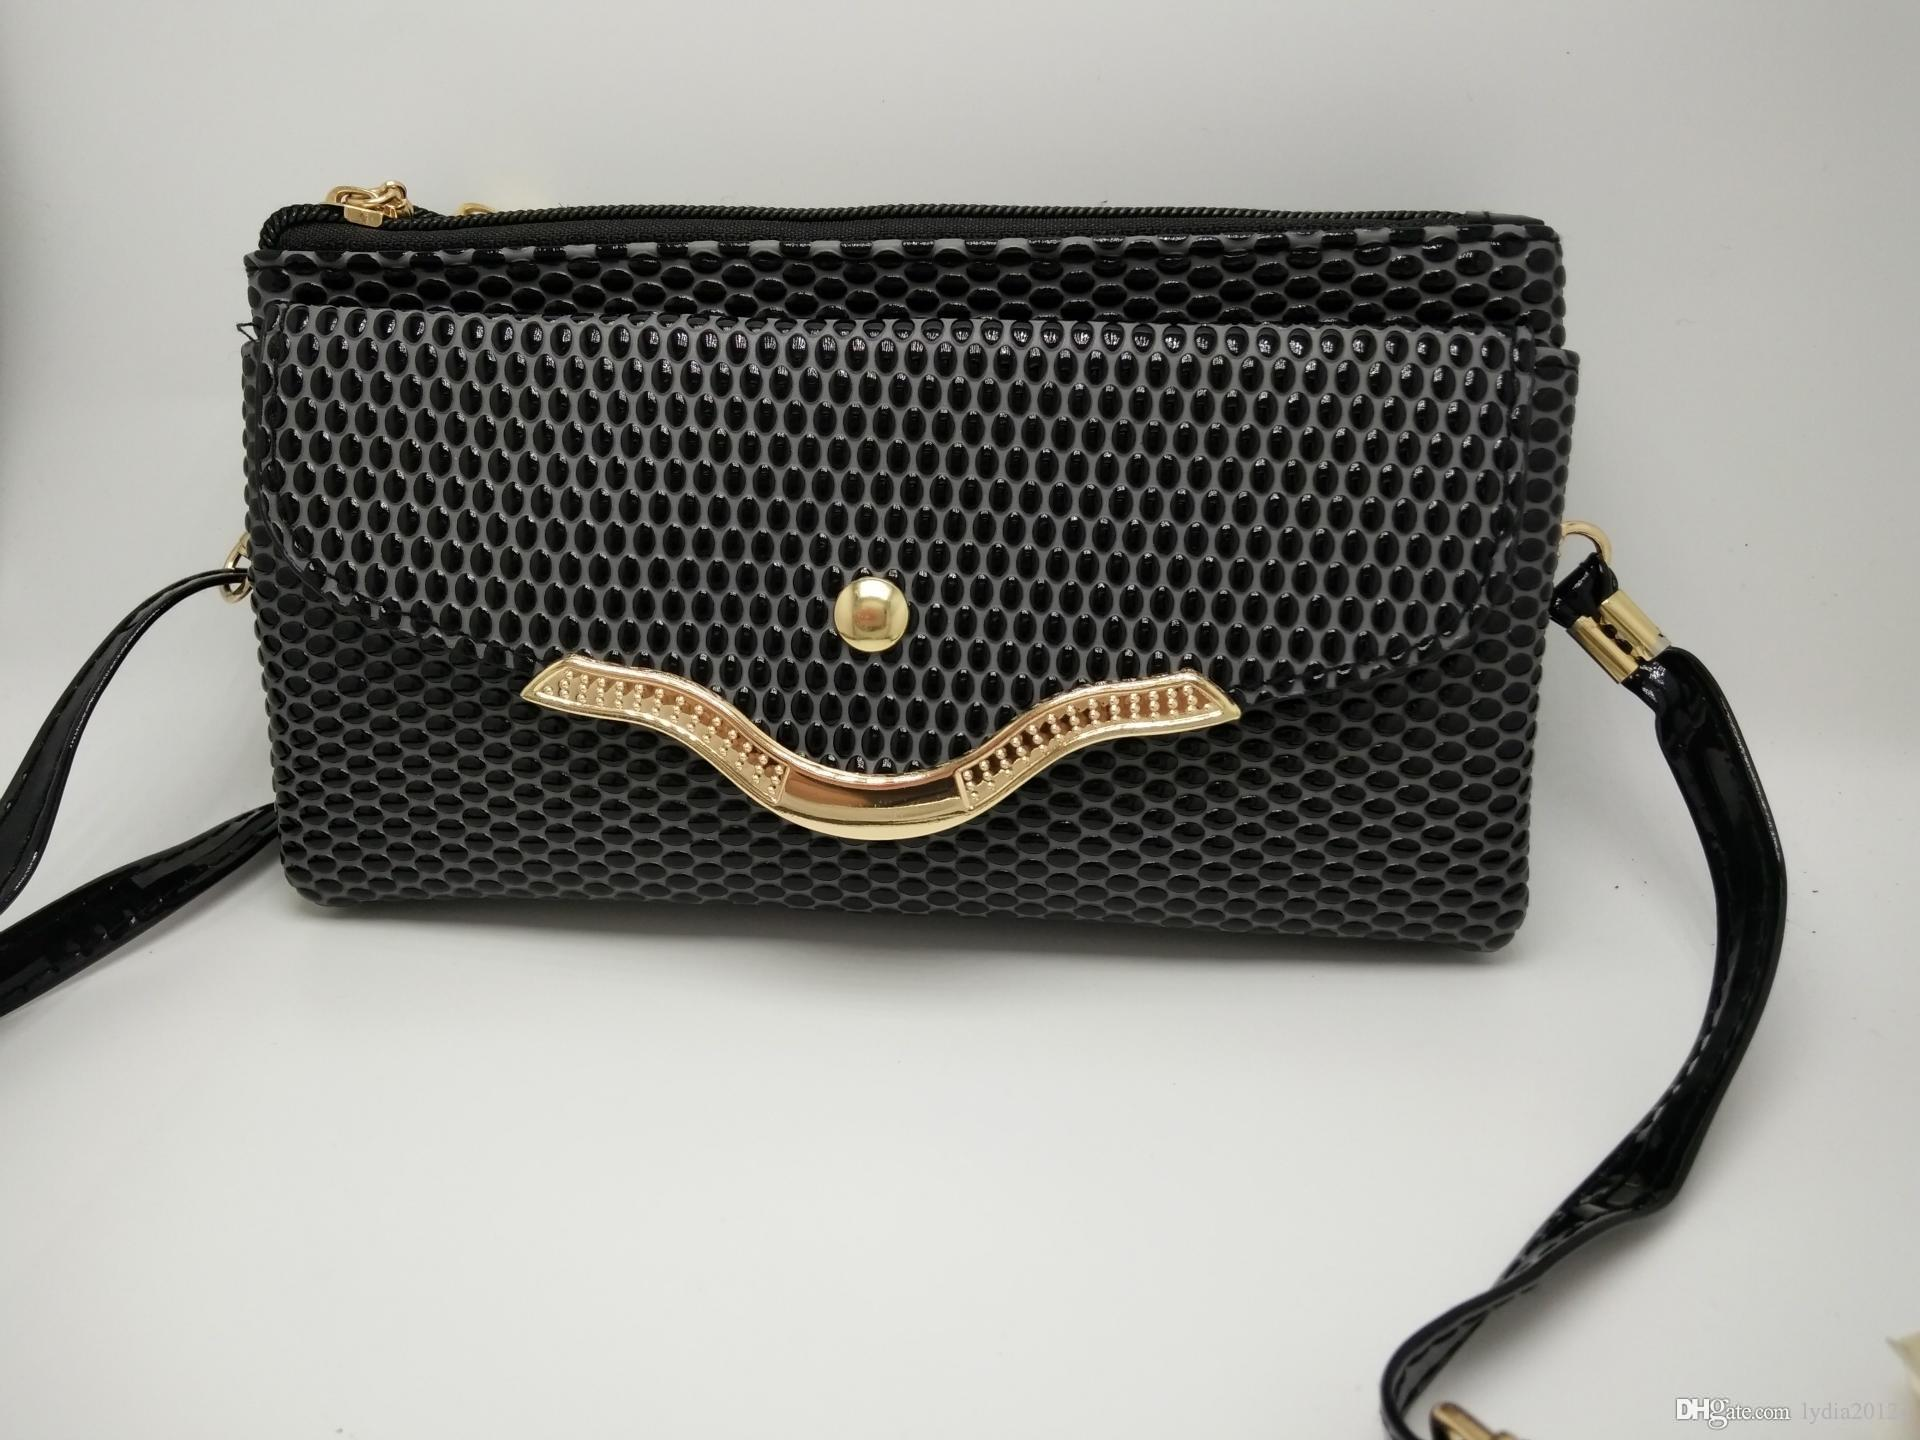 2017 Women Bags New Style High Quality Best Selling Large Capacity  Alligator Double Used Multifunctonal Cross